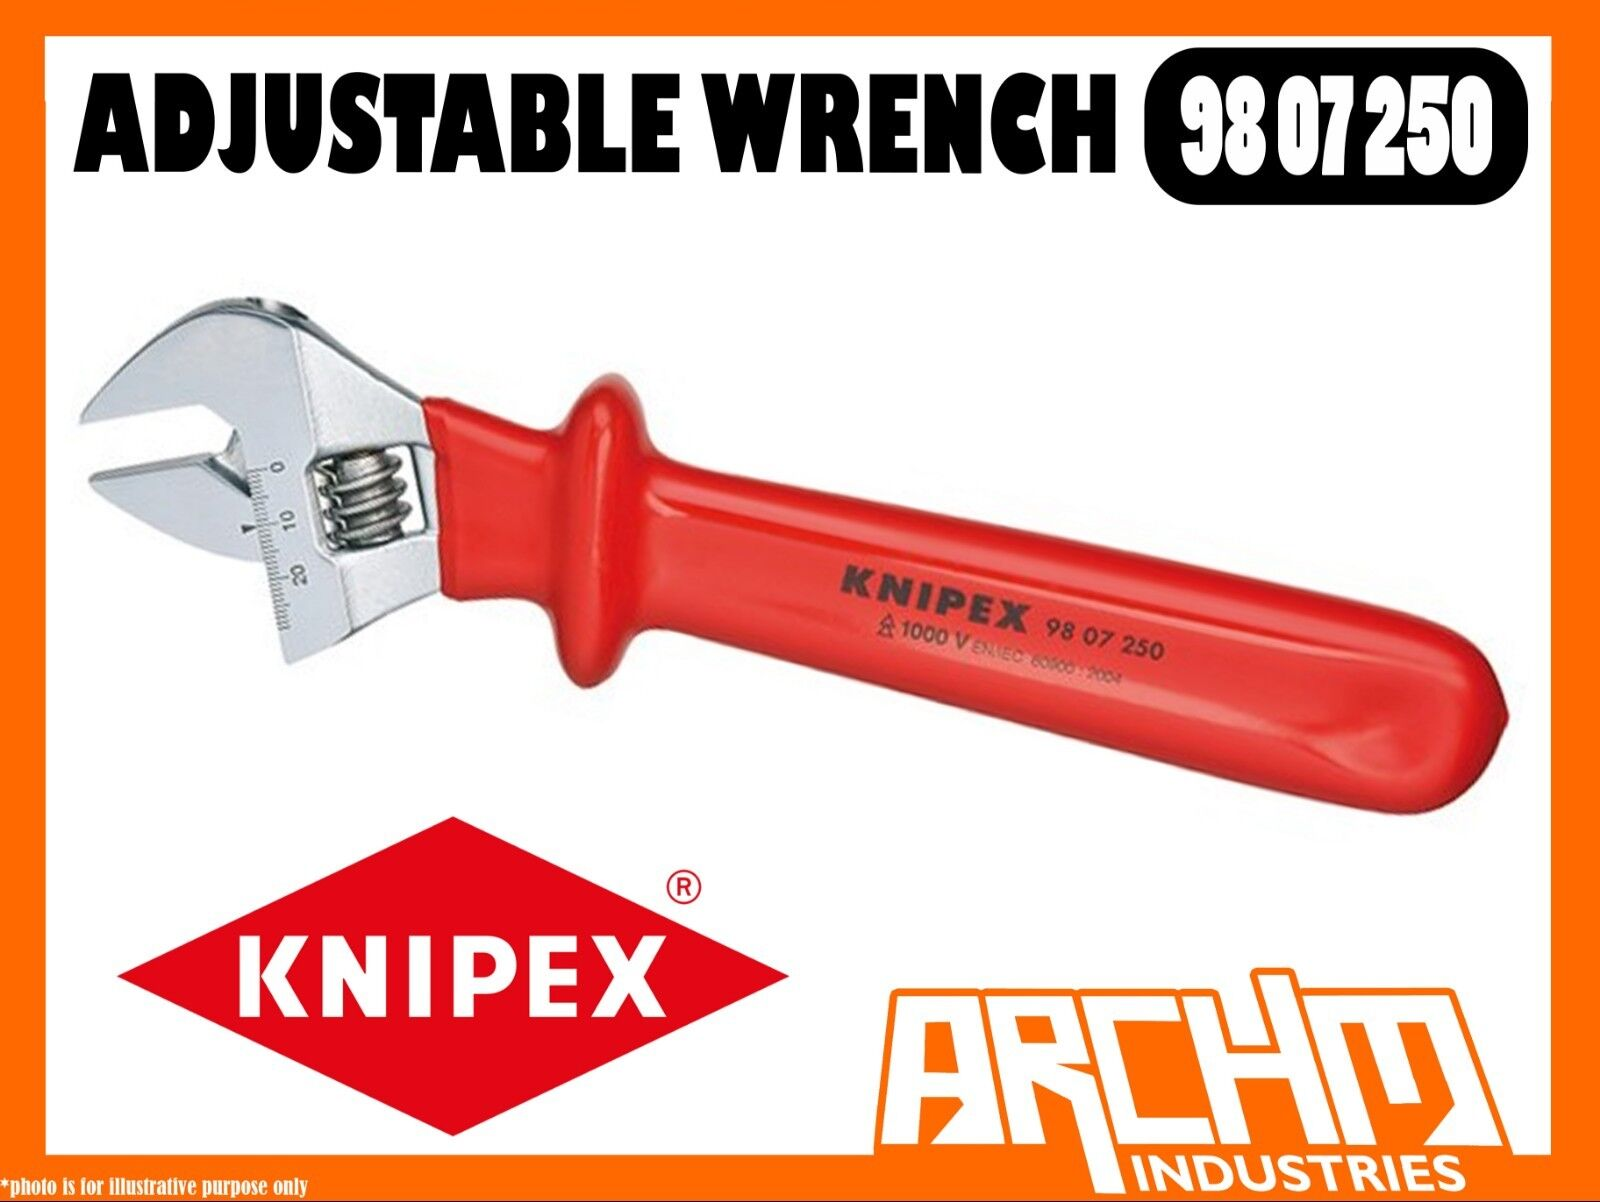 KNIPEX 9807250 - ADJUSTABLE WRENCH - 260MM - HEXAGON SMOOTH GRIPPING JAW